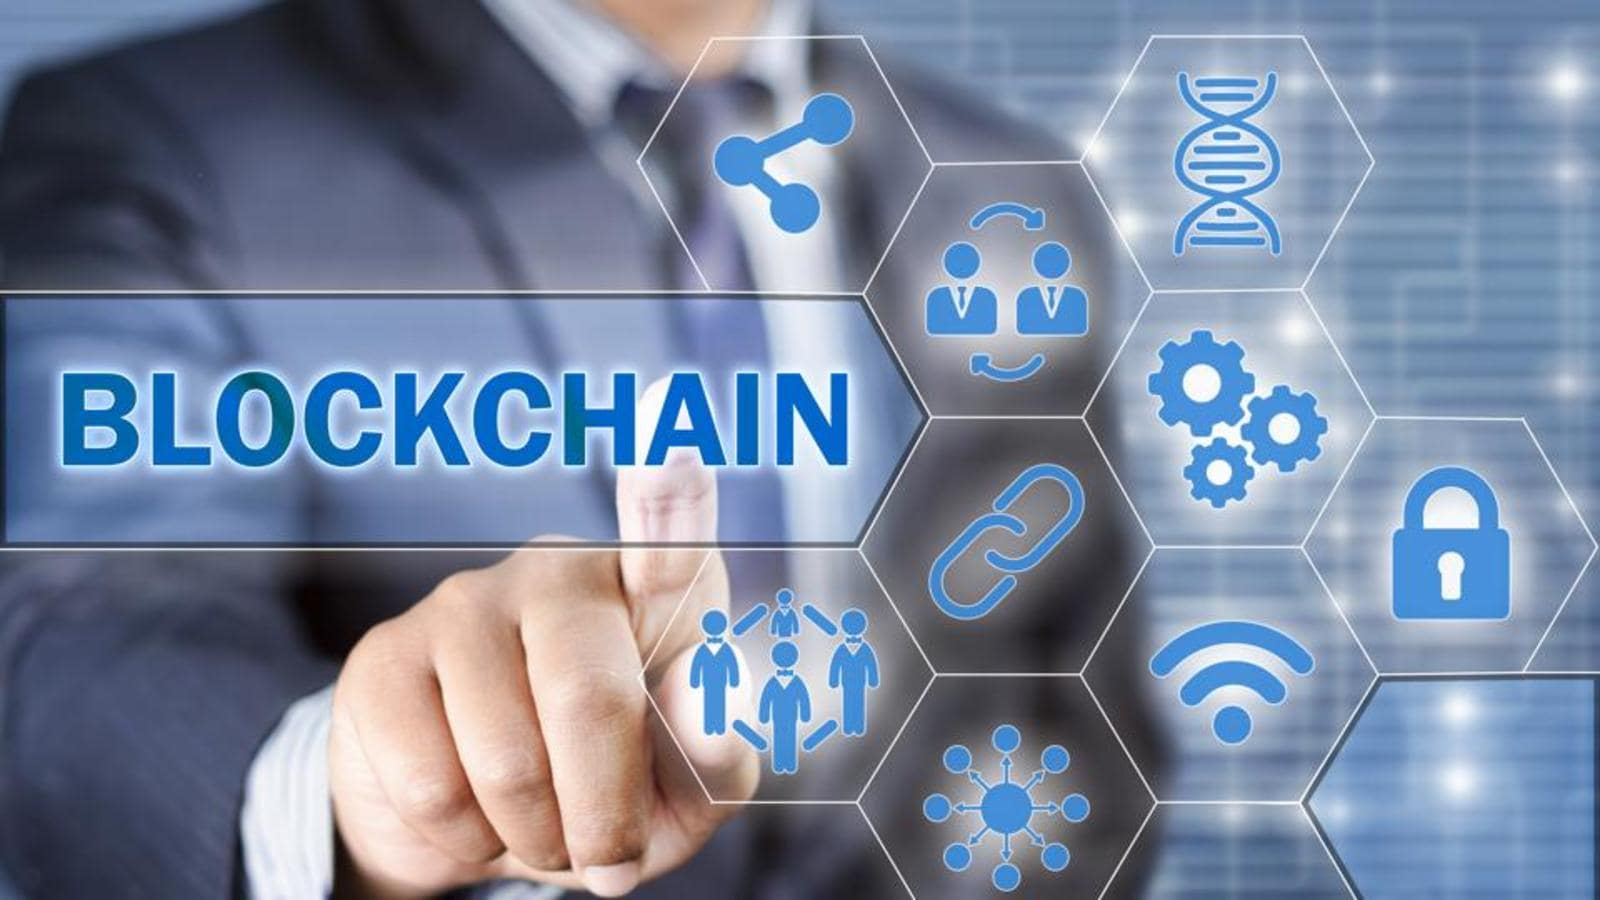 Government uses blockchain to certify, provide startups with incentives